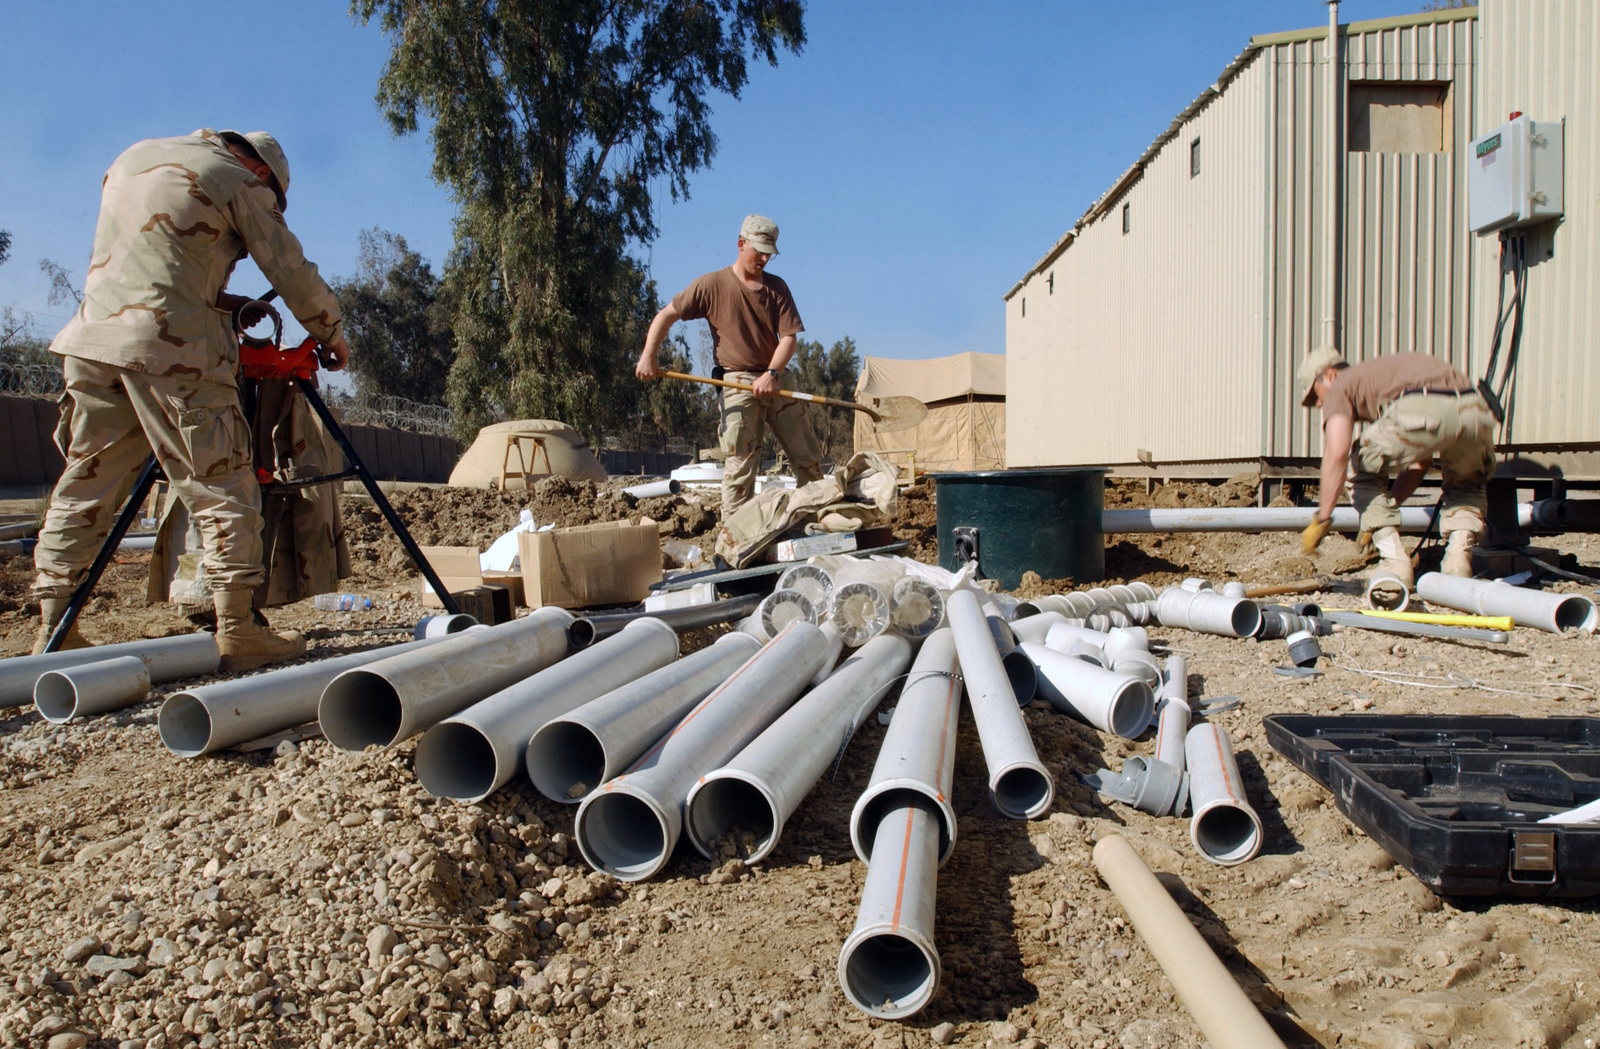 US Air Force (USAF) 447th Expeditionary Civil Engineer Squadron (ECES), Utility Systems Specialists install a grinder on newly installed portable latrines at Baghdad International Airport (BIA), Iraq (IRQ), in support of Operation IRAQI FREEDOM